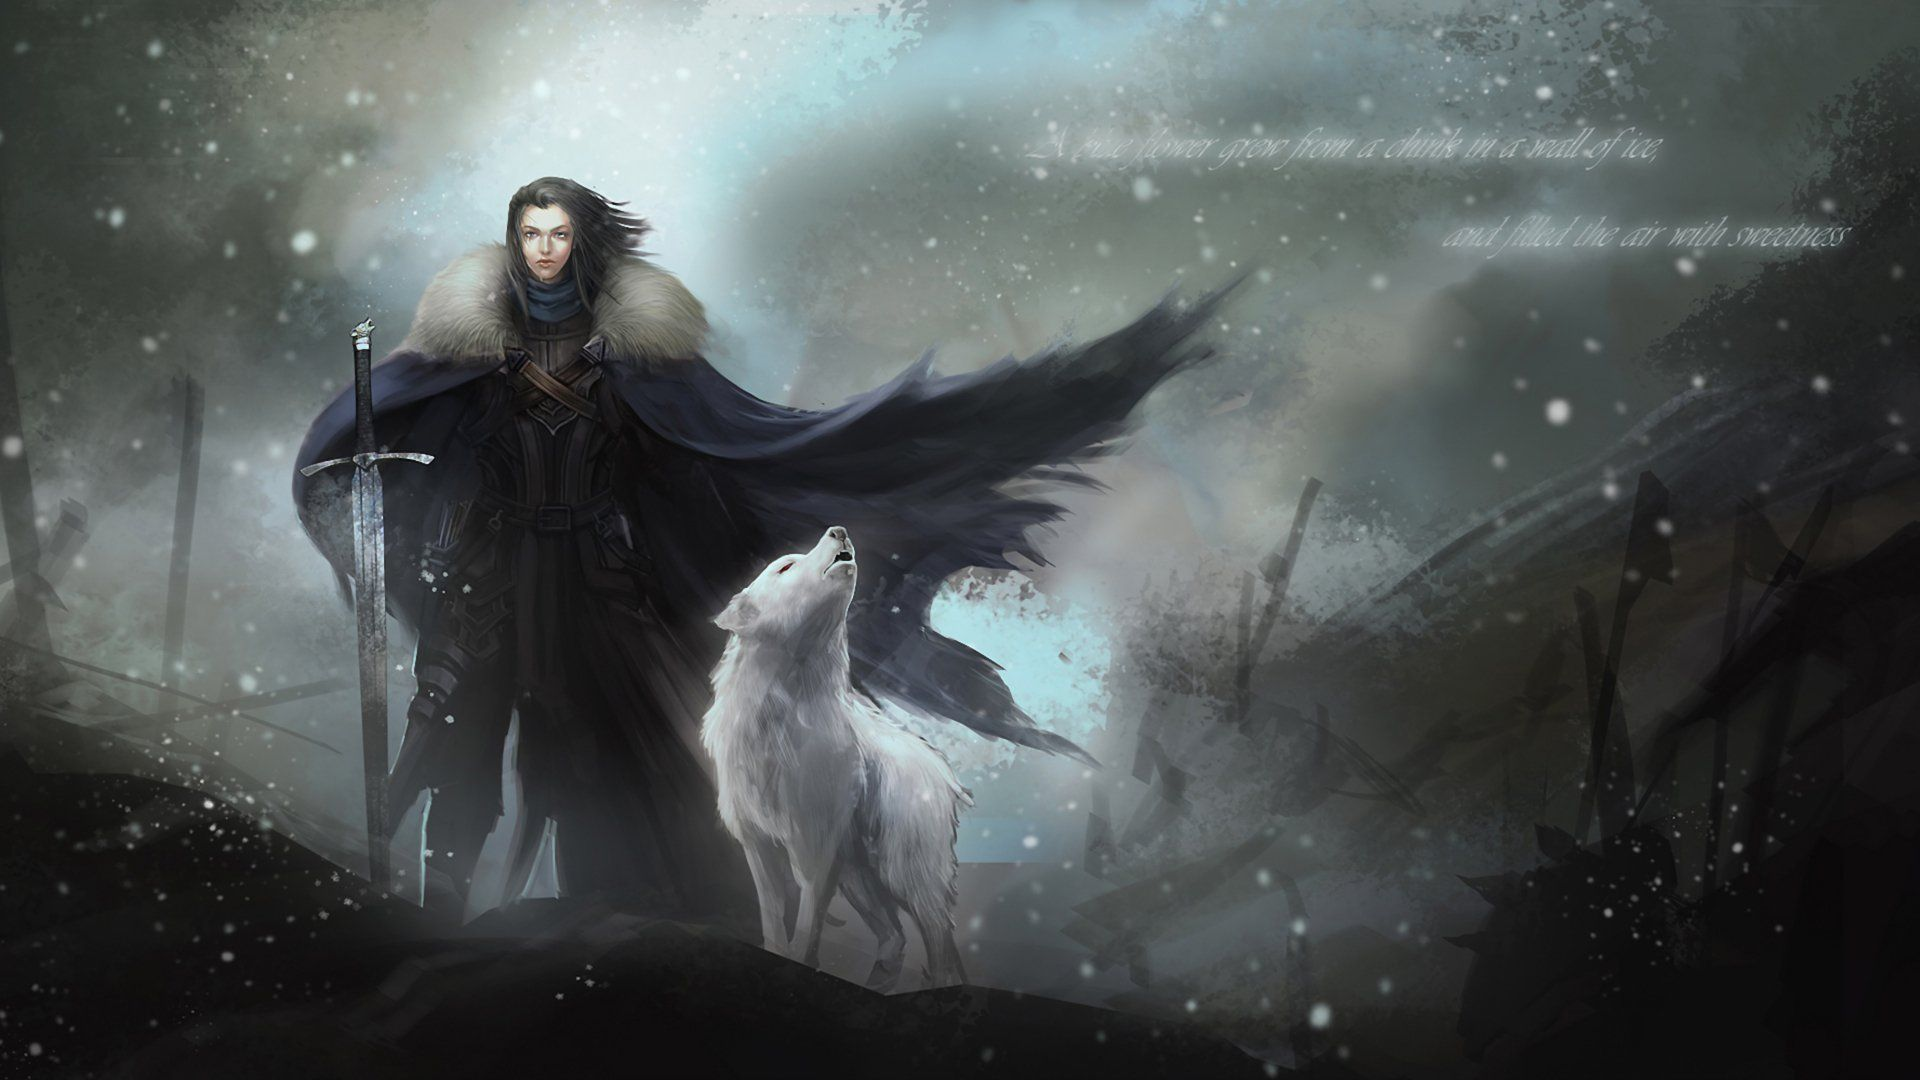 Game Of Thrones Hd Wallpaper 1920x1080 Id 31351 All Wallpapers